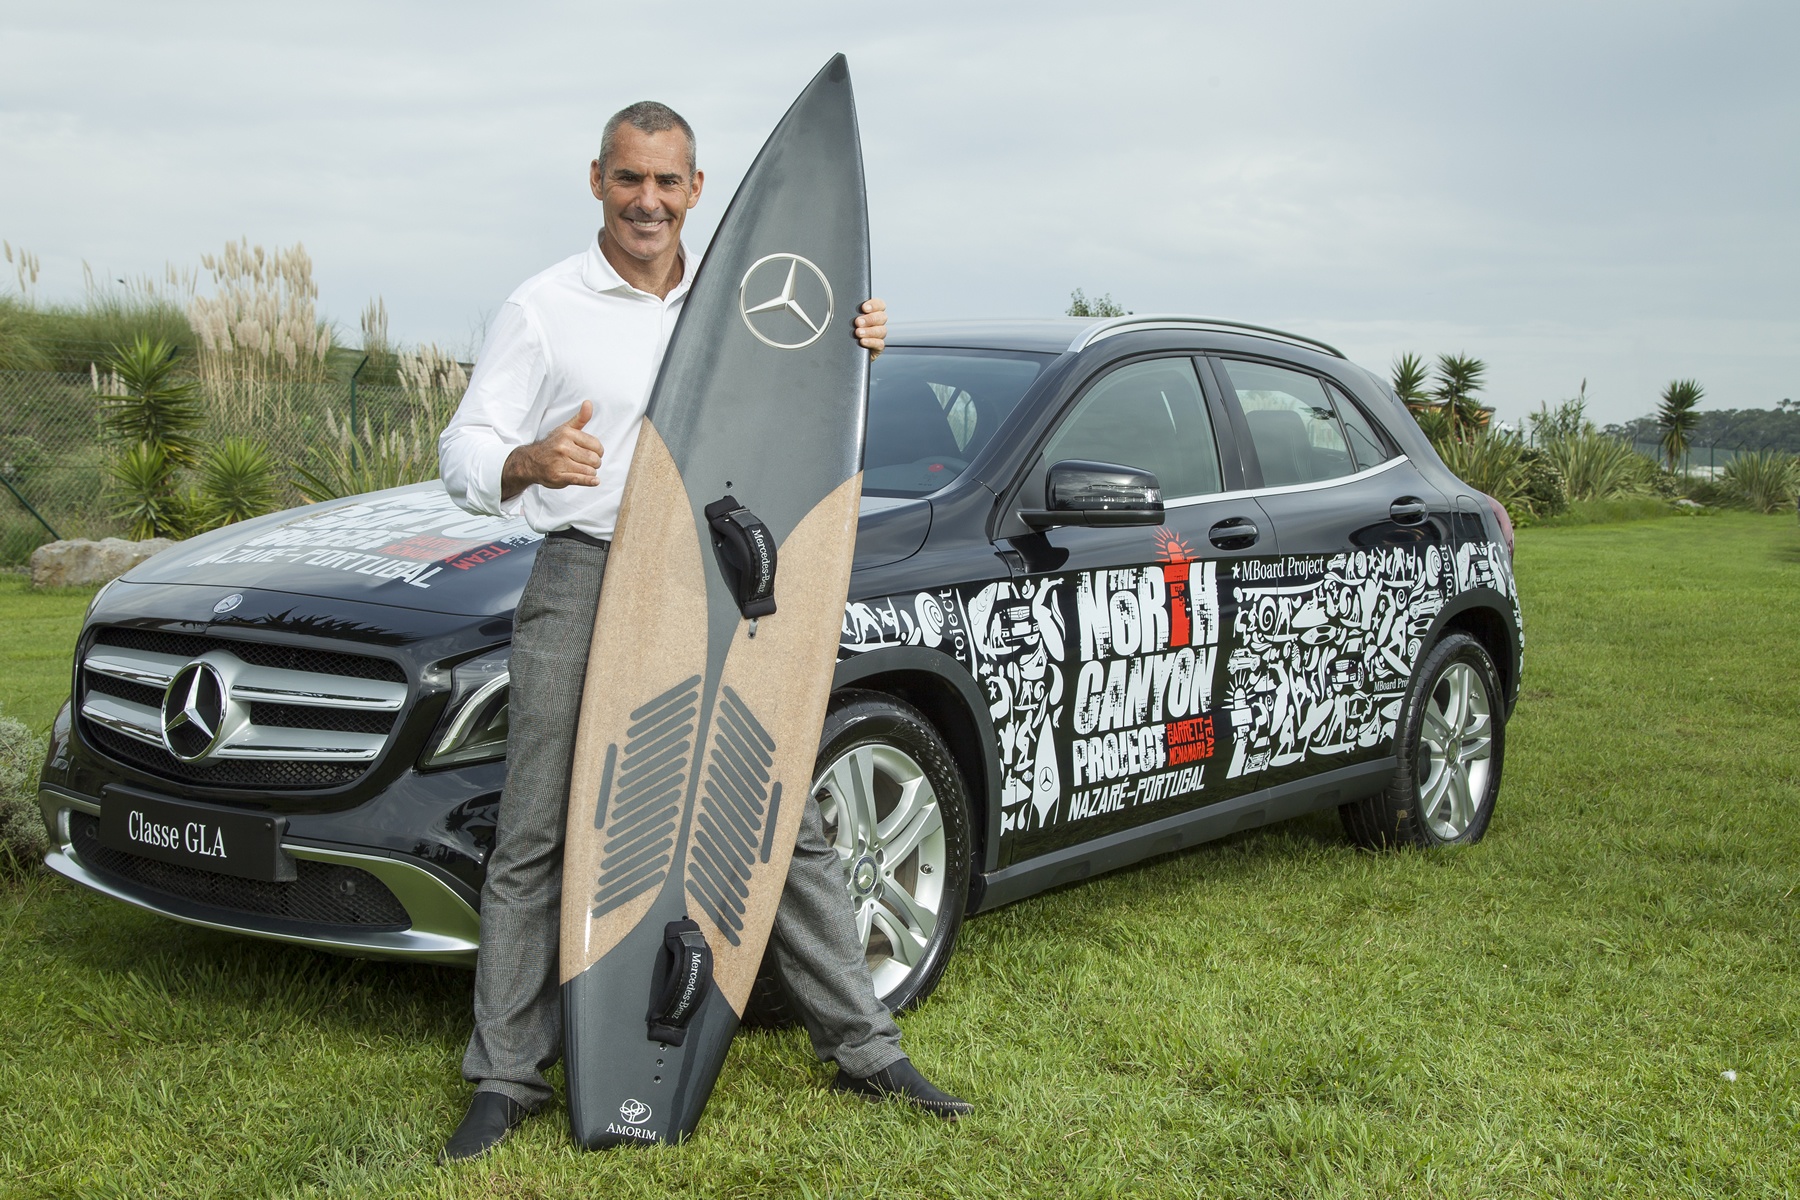 McNamara with cork surf board